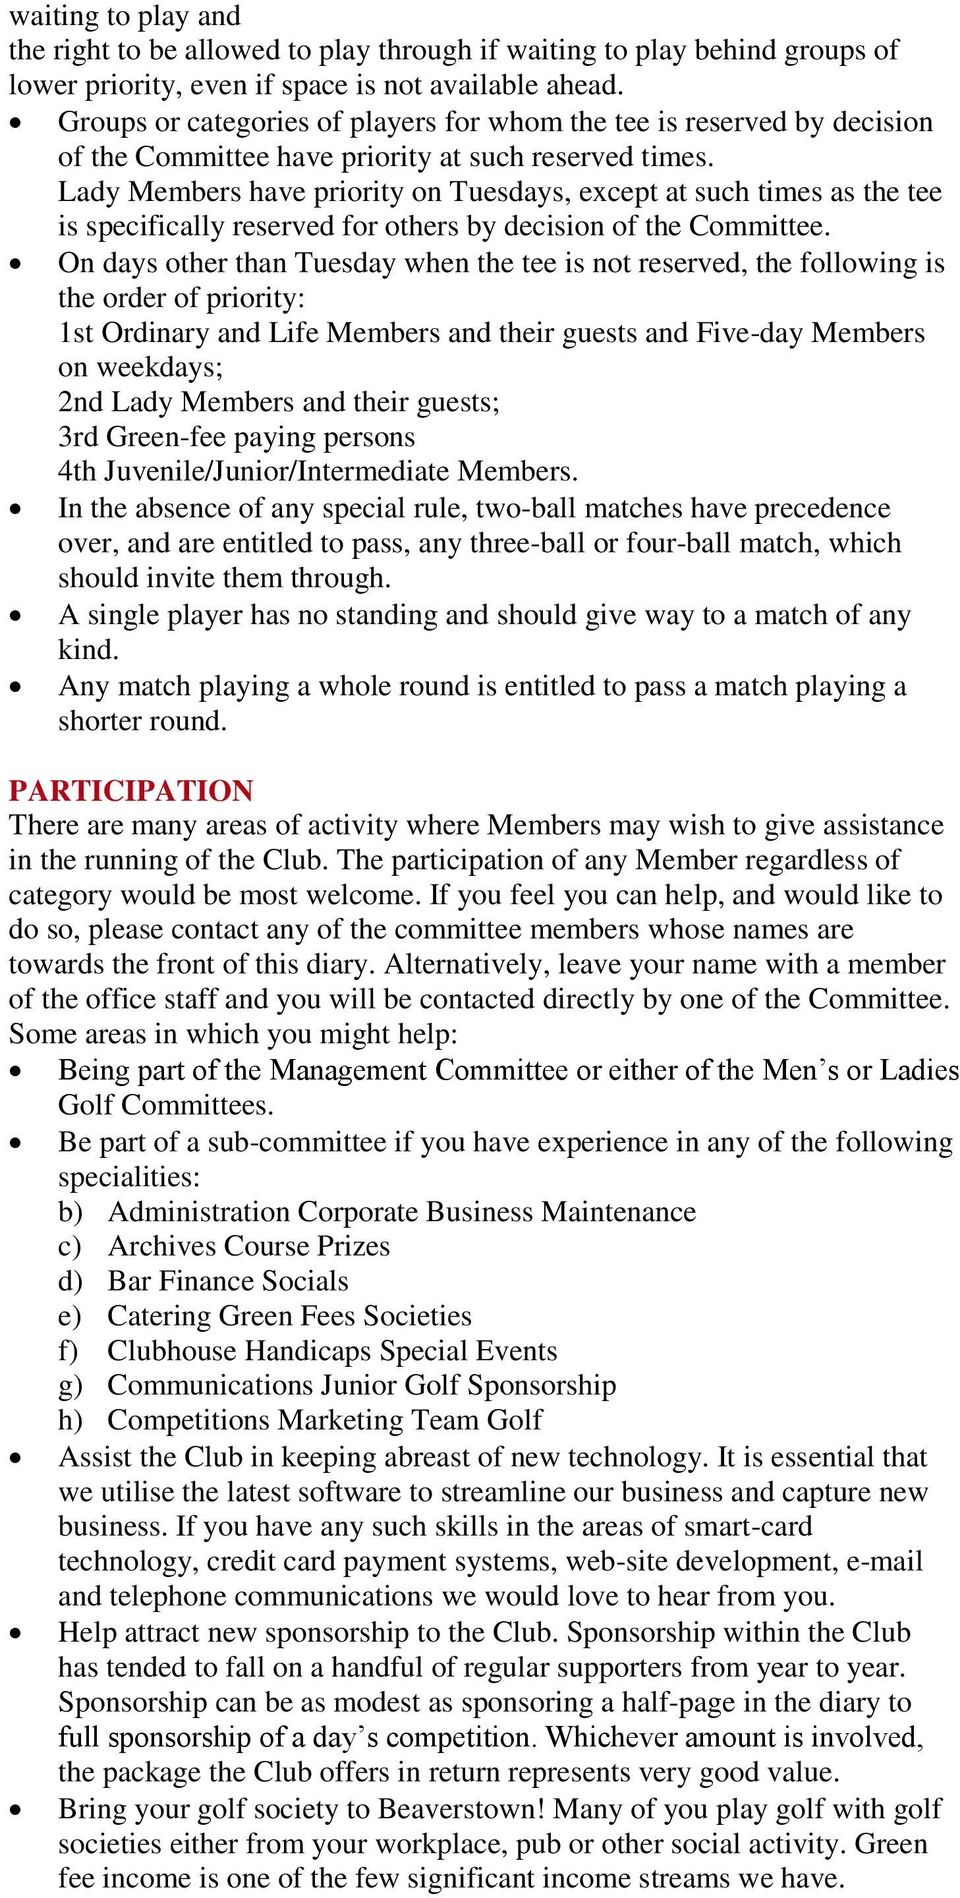 Lady Members have priority on Tuesdays, except at such times as the tee is specifically reserved for others by decision of the Committee.